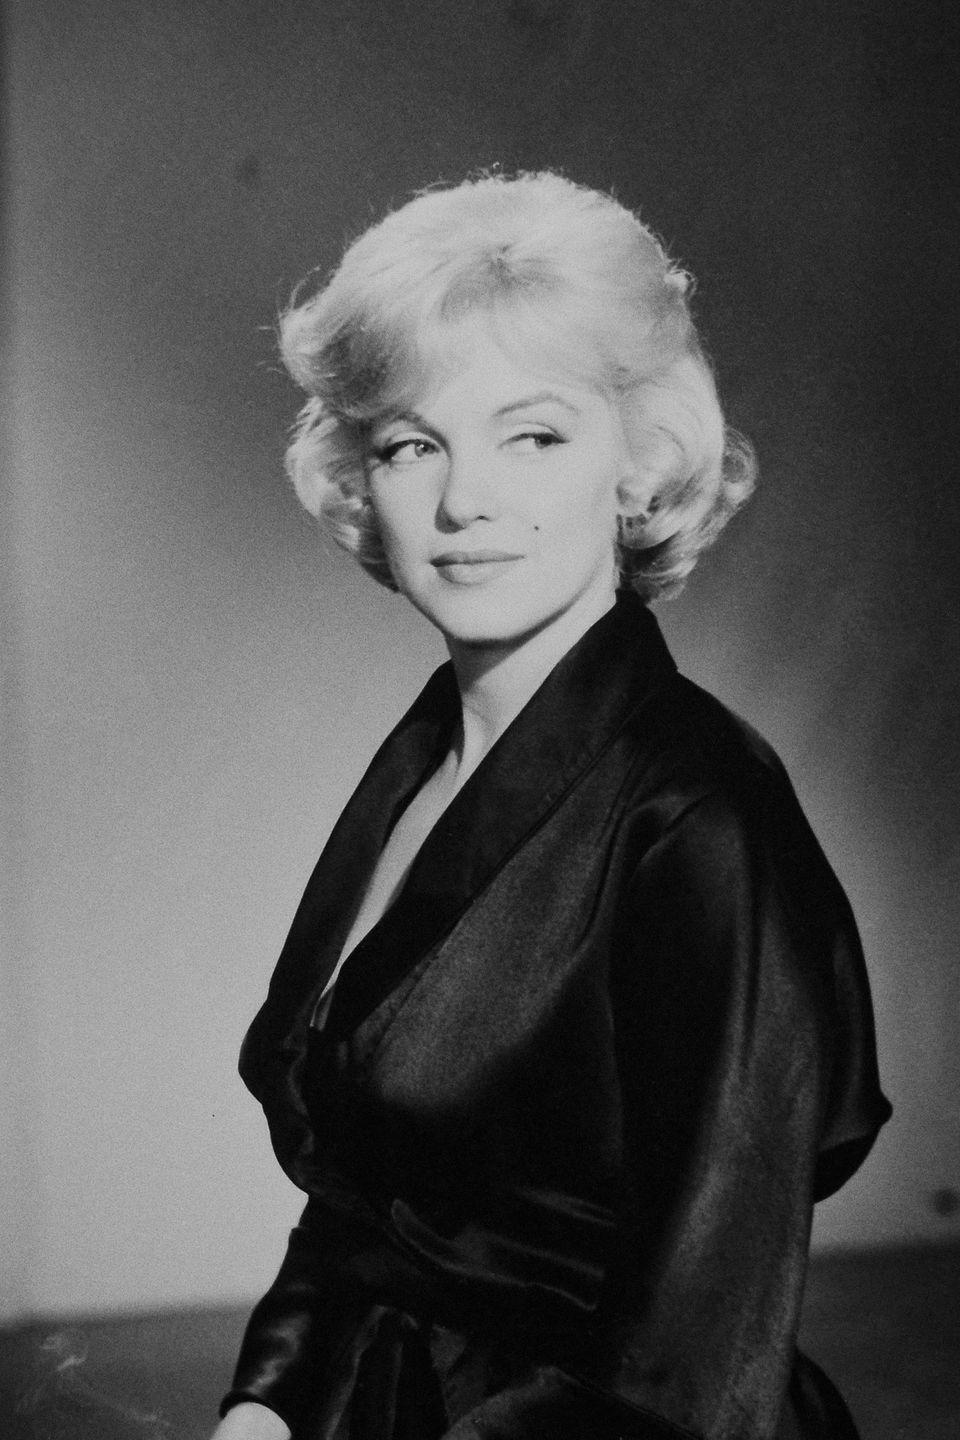 <p>At 32 years old, Monroe was at the peak of her career and was a full-fledged sex symbol. </p>